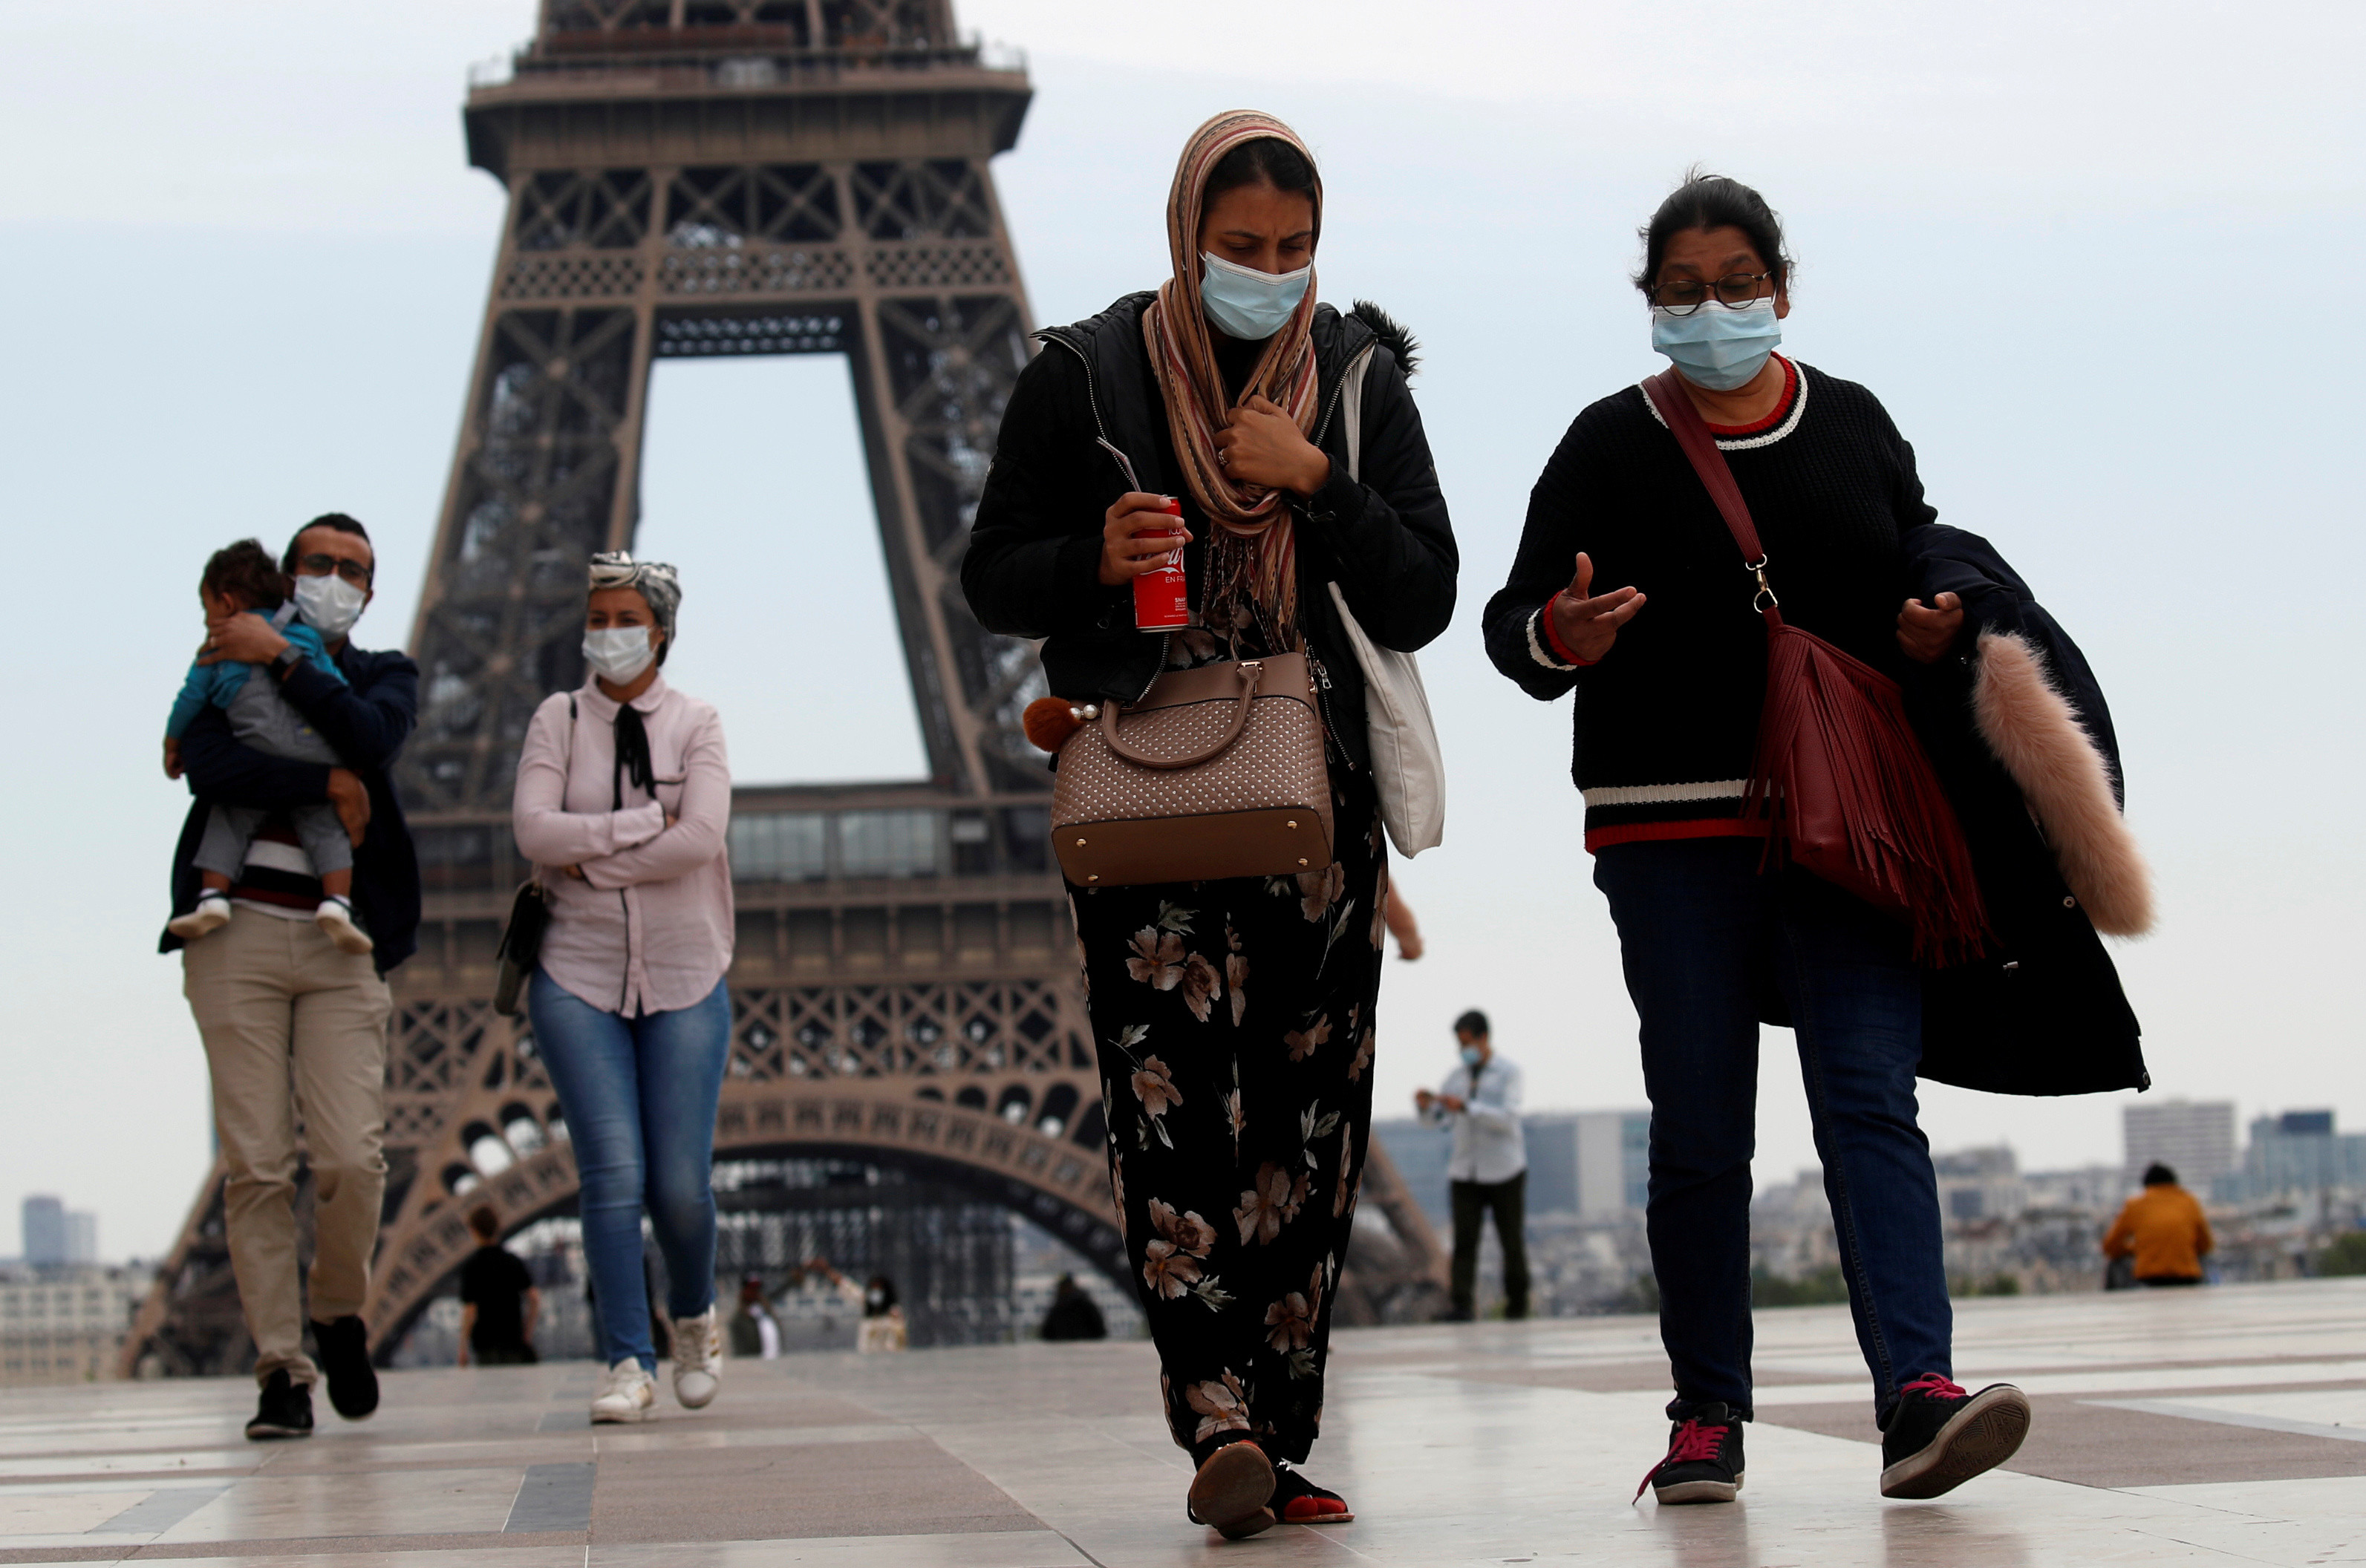 People wearing face masks walk at Trocadero square near the Eiffel Tower, as France began a gradual end to a nationwide lockdown due to the coronavirus disease (COVID-19) in Paris, France, May 16, 2020. REUTERS/Gonzalo Fuentes     TPX IMAGES OF THE DAY - RC2OPG9EW4WV